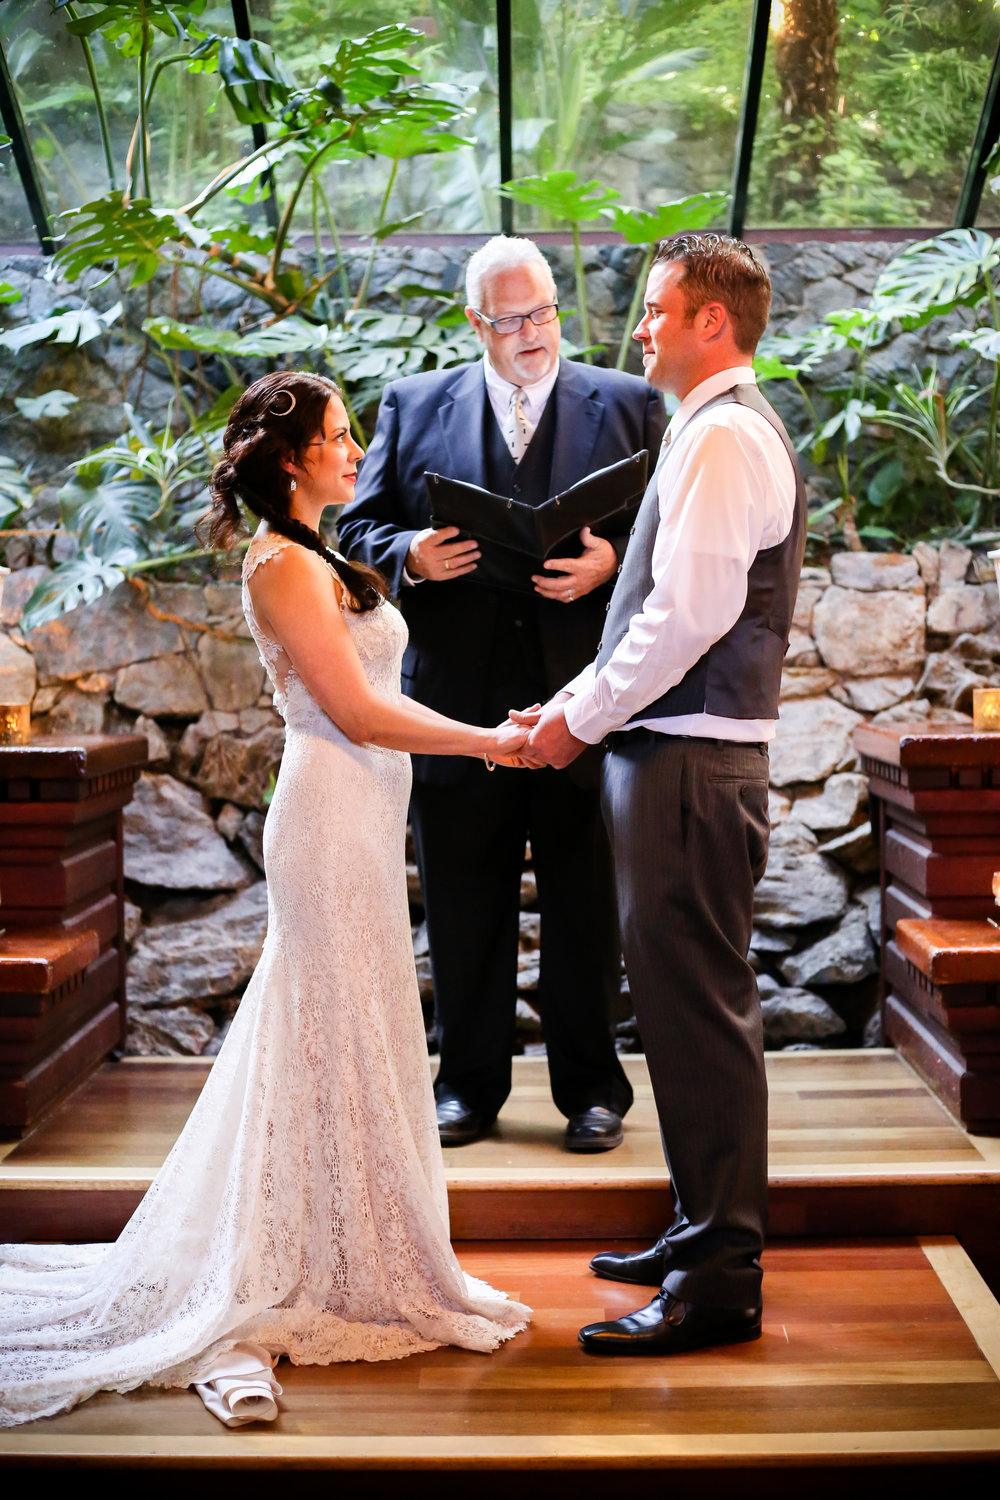 alexandra-rice-photography-shadowbrook-capitola-santa cruz-wedding-bride-groom-ceremony-rock-room-vows.jpg